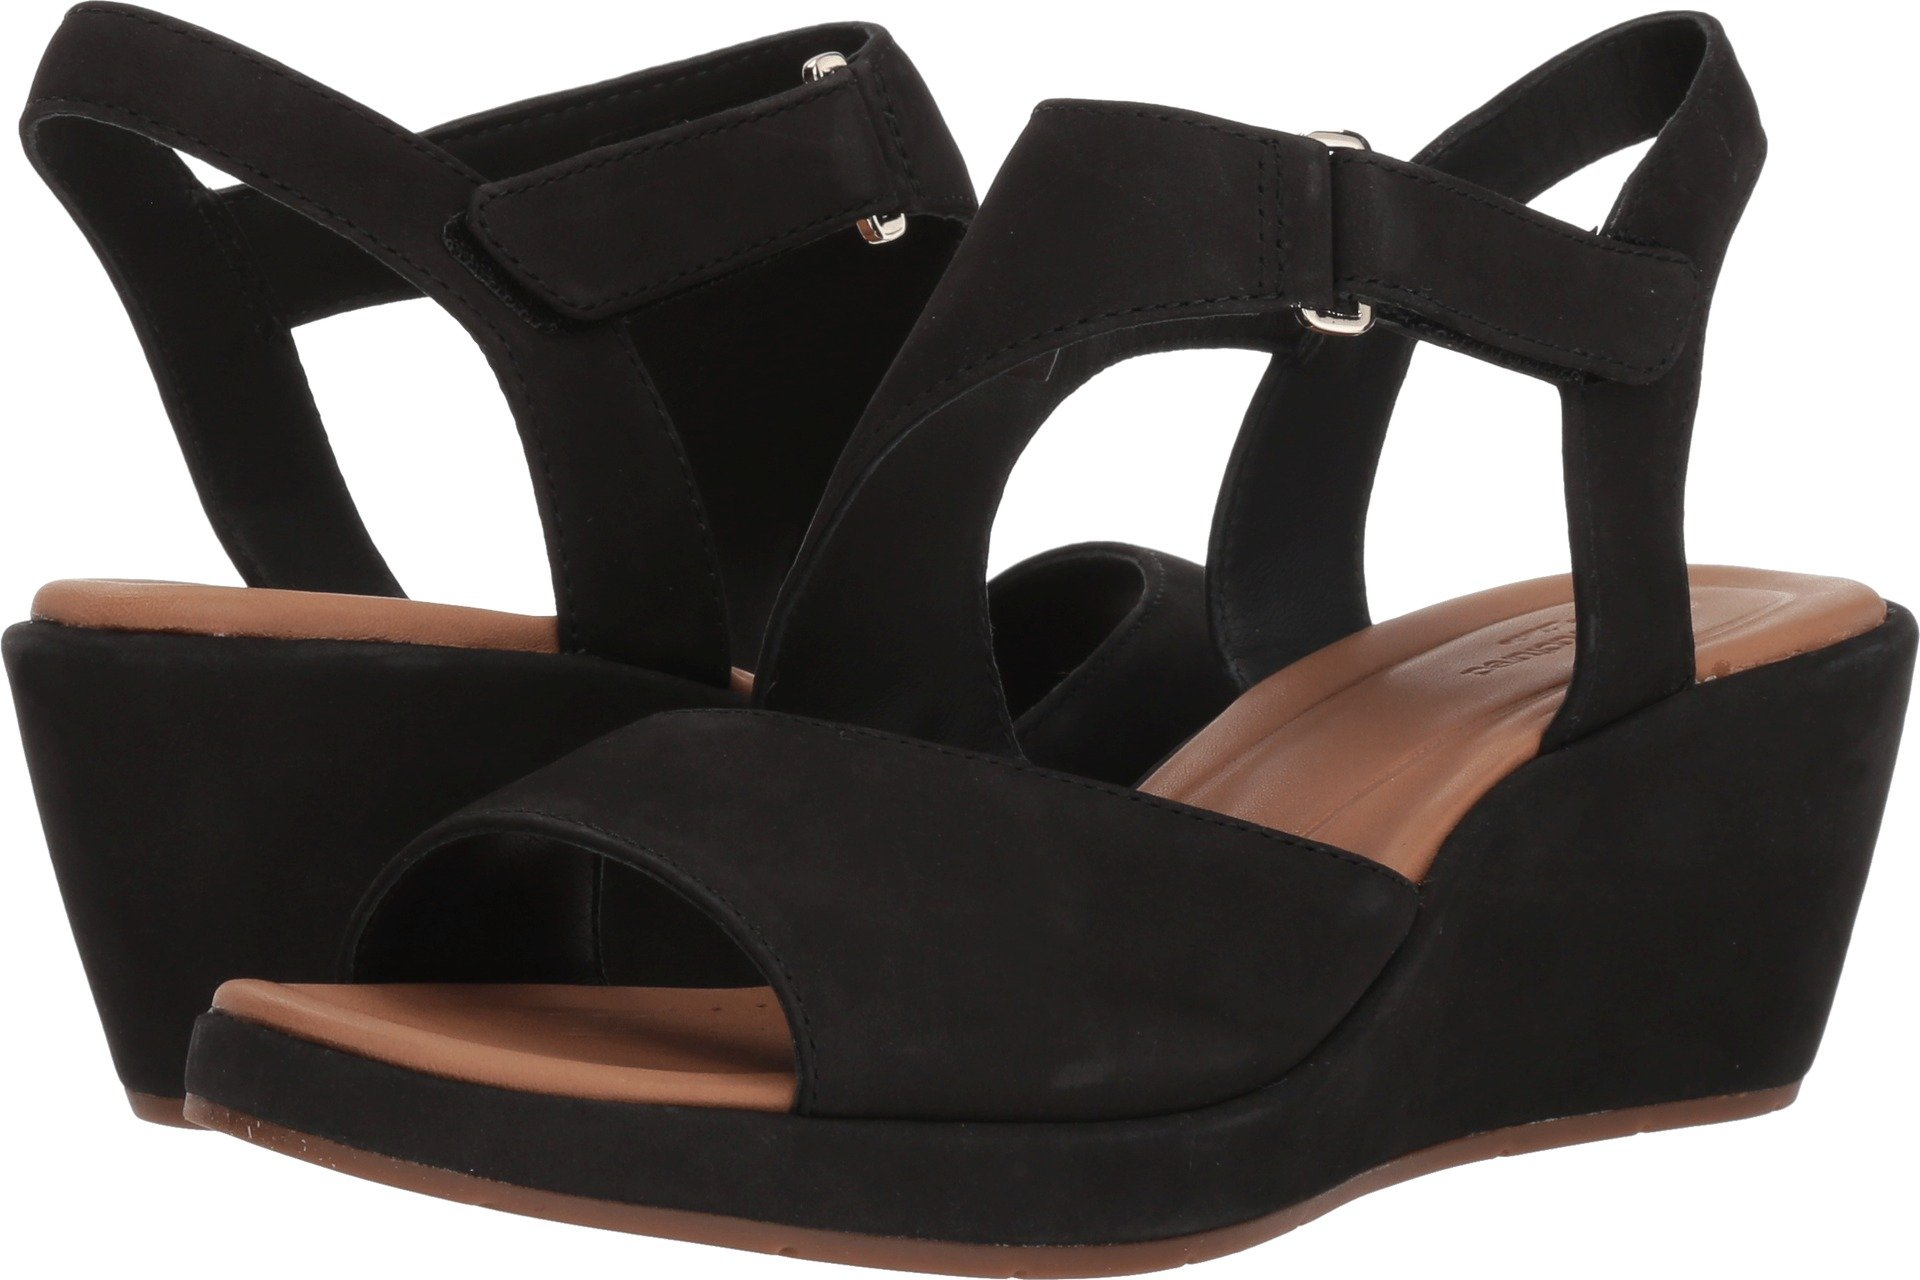 CLARKS Unstructured by Women's Un Plaza Sling Wedge Sandal Black 7 M US by CLARKS